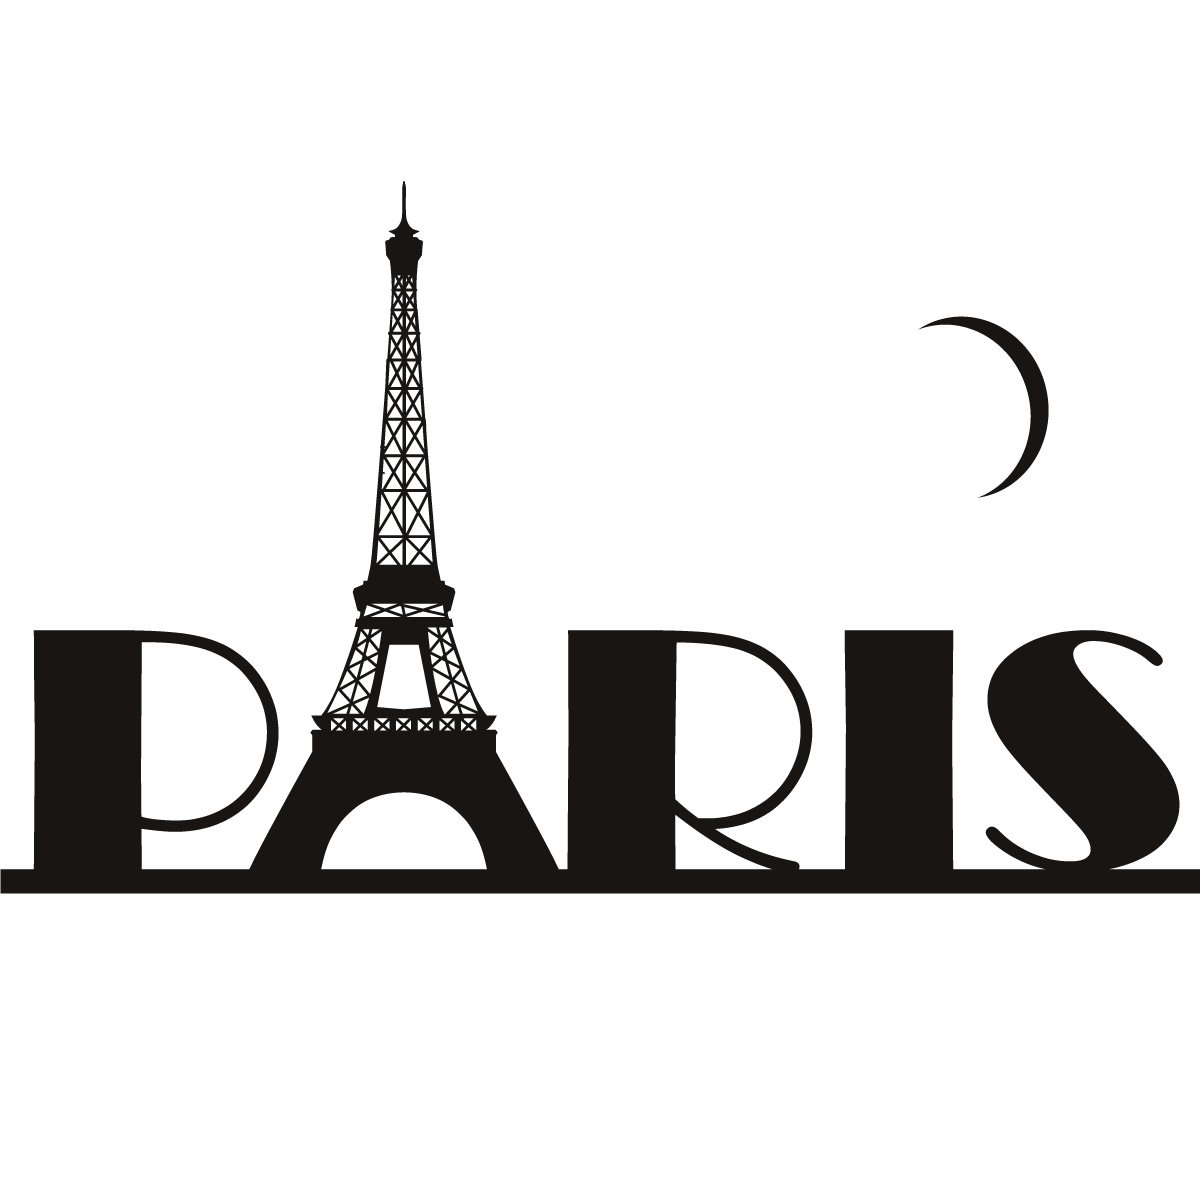 April in paris clipart clipart transparent stock Tomorrow: April in Paris -- Join us! | Rotary Club of Lake Zurich clipart transparent stock